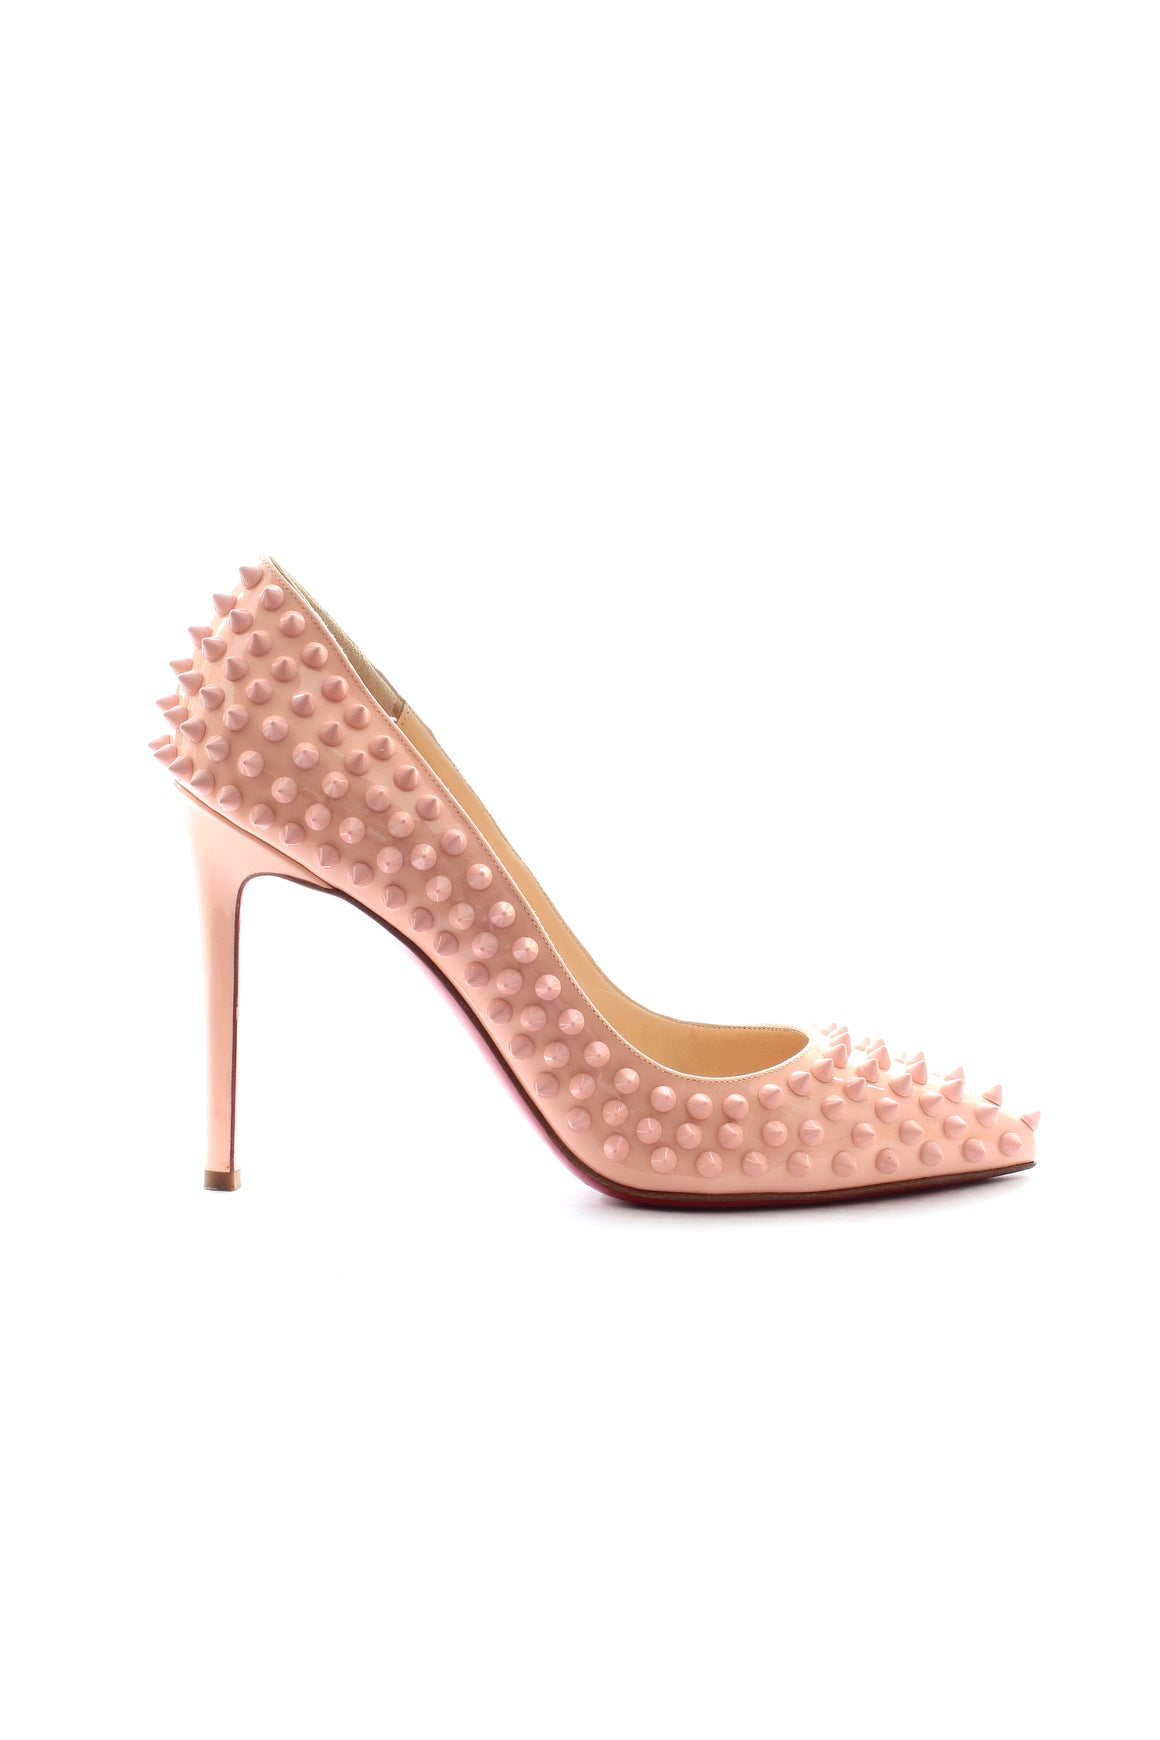 Christian Louboutin Pigalle 100 Spike Patent Leather Pumps